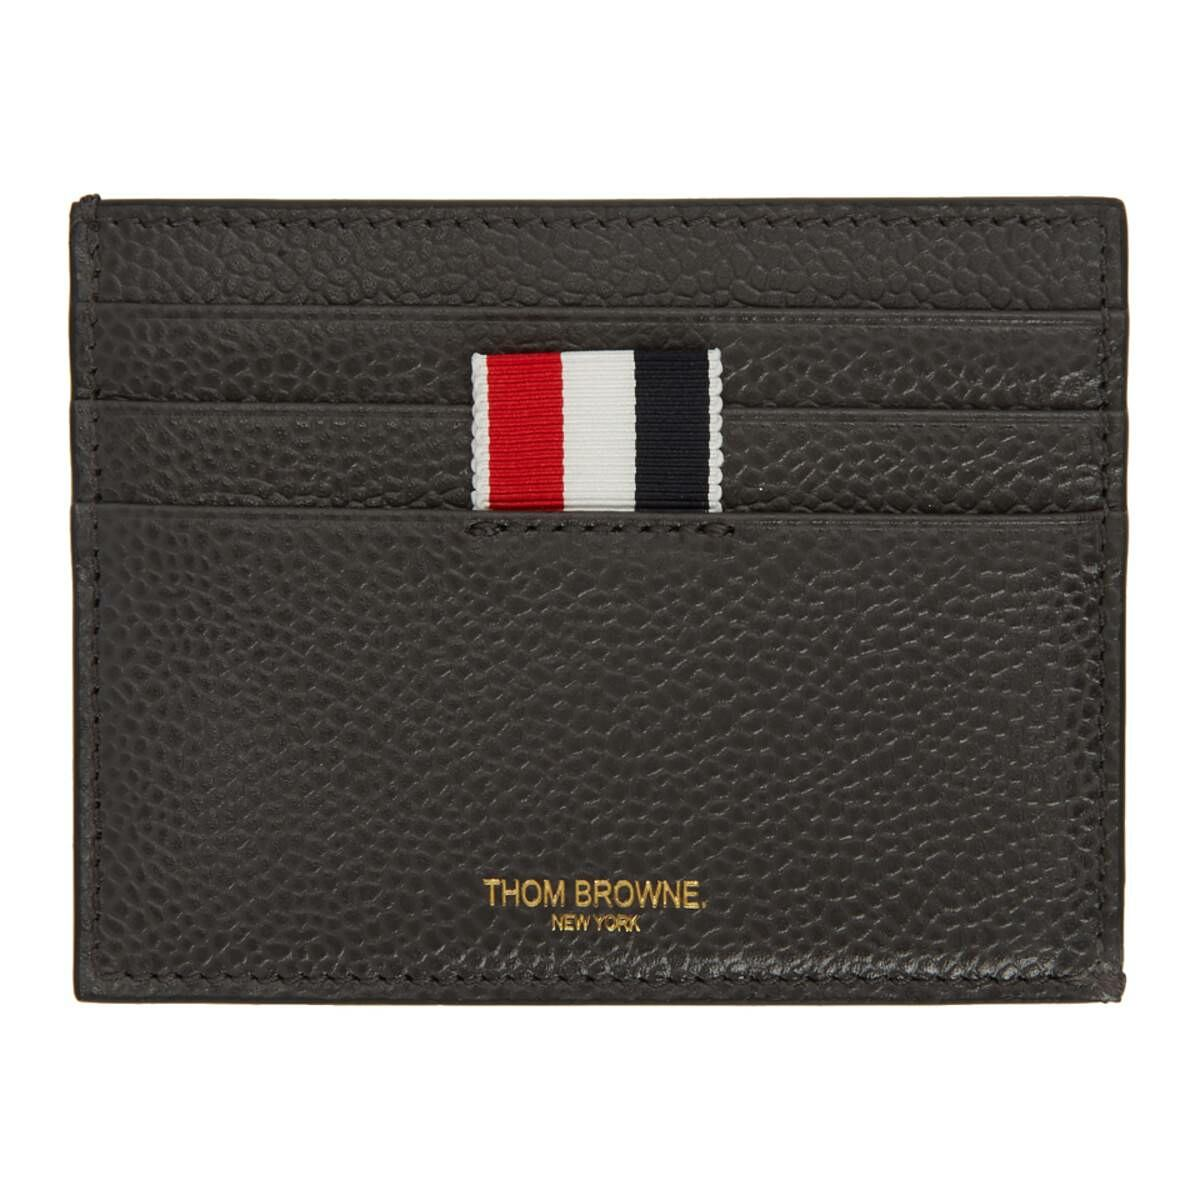 Thom Browne Grey 4-Bar Blind Emboss Note Compartment Card Holder Ssense USA MEN Men ACCESSORIES Mens JEWELRY